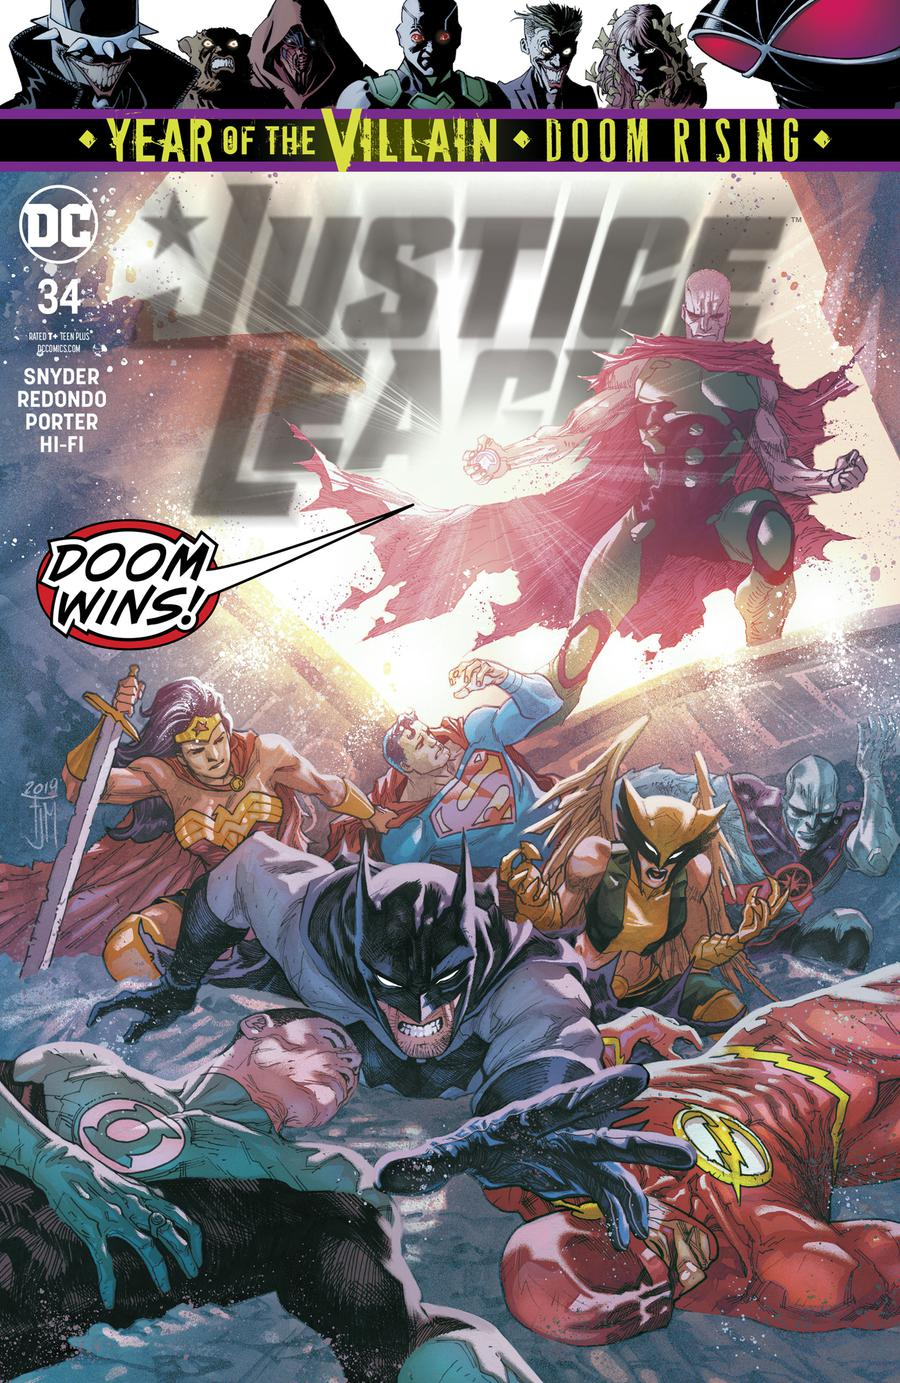 Justice League Vol 4 #34 Cover A Regular Francis Manapul Cover (Year Of The Villain Doom Rising Tie-In)